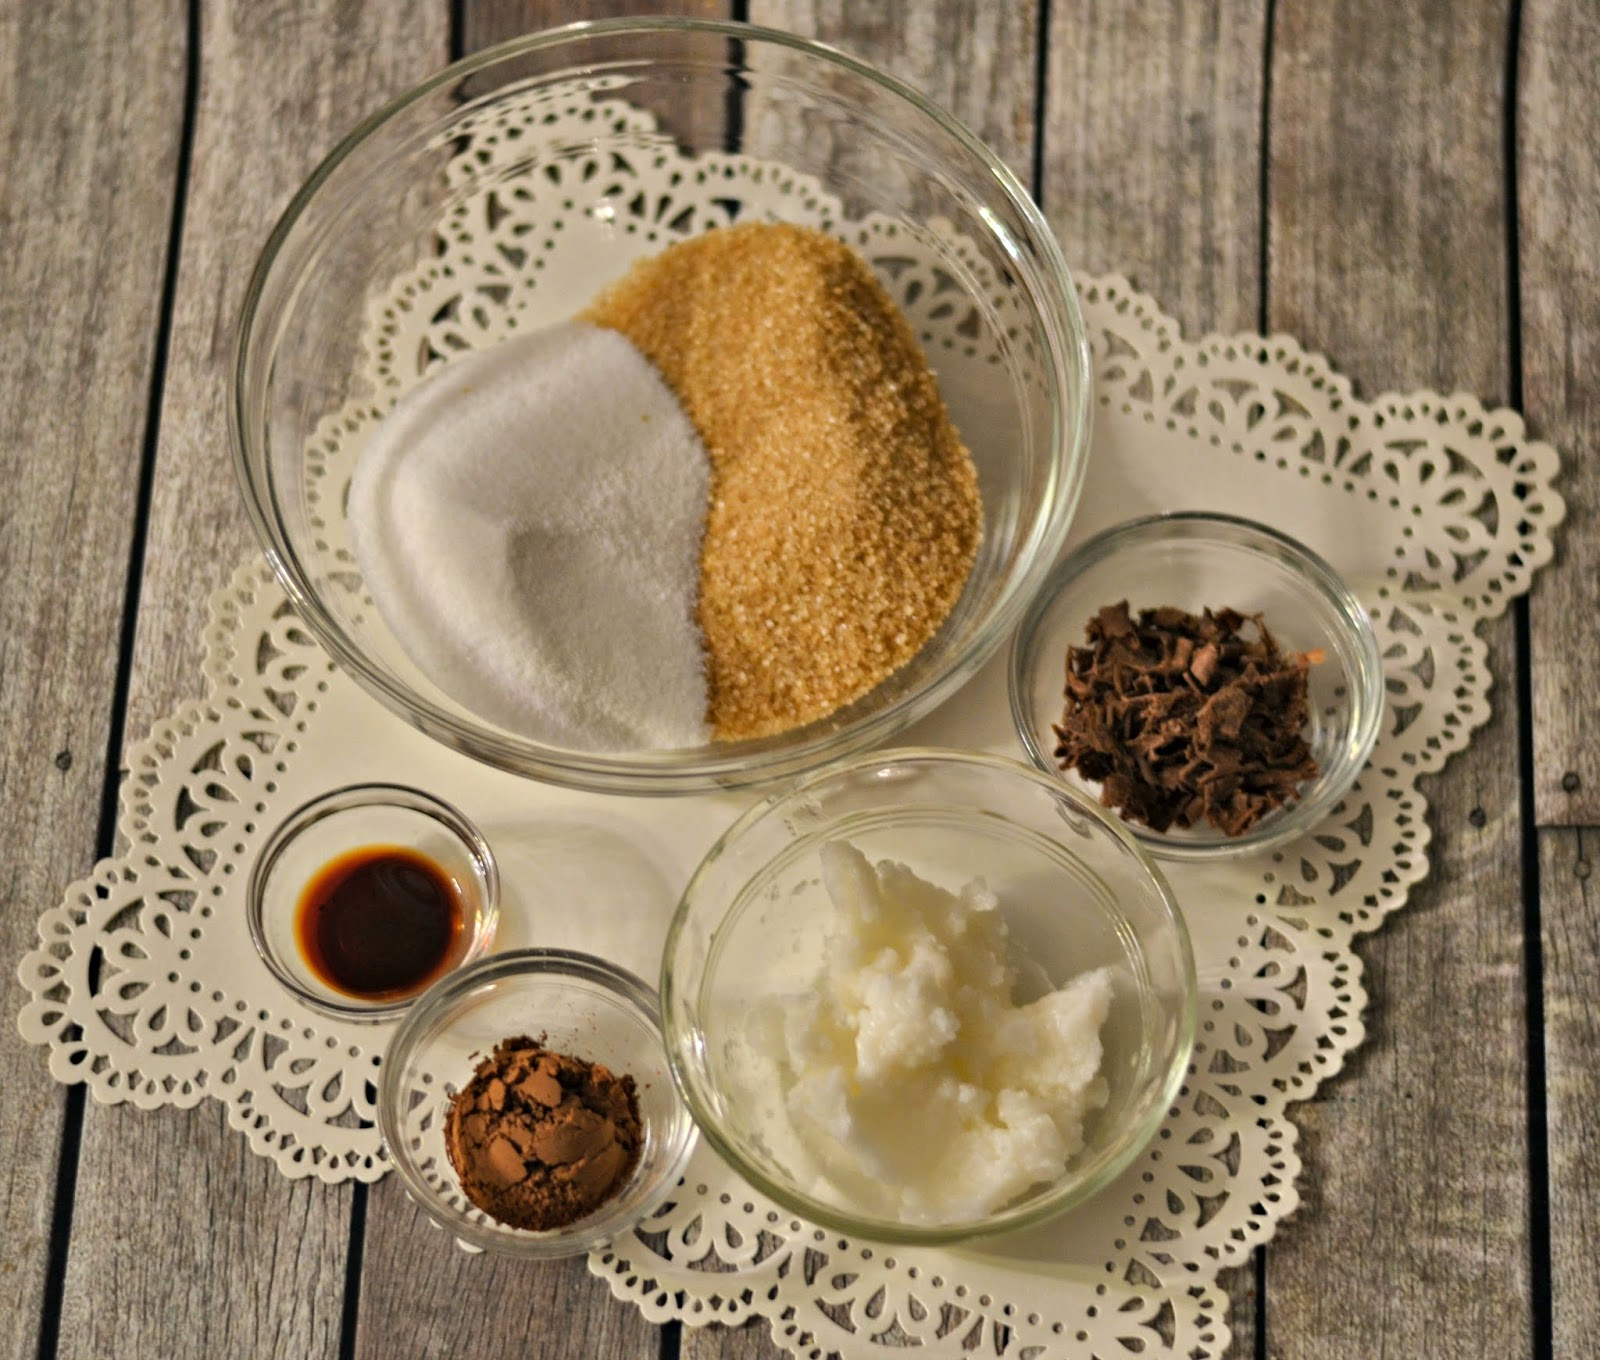 Chocolate Sugar Scrub Recipe #DIY - Valentines Day Gift.  Valentines Day gifts for girlfriends.  DIY Valentines Day gifts.  Sugar scrub recipes.  Easy Sugar scrub.  Chocolate sugar scrub.